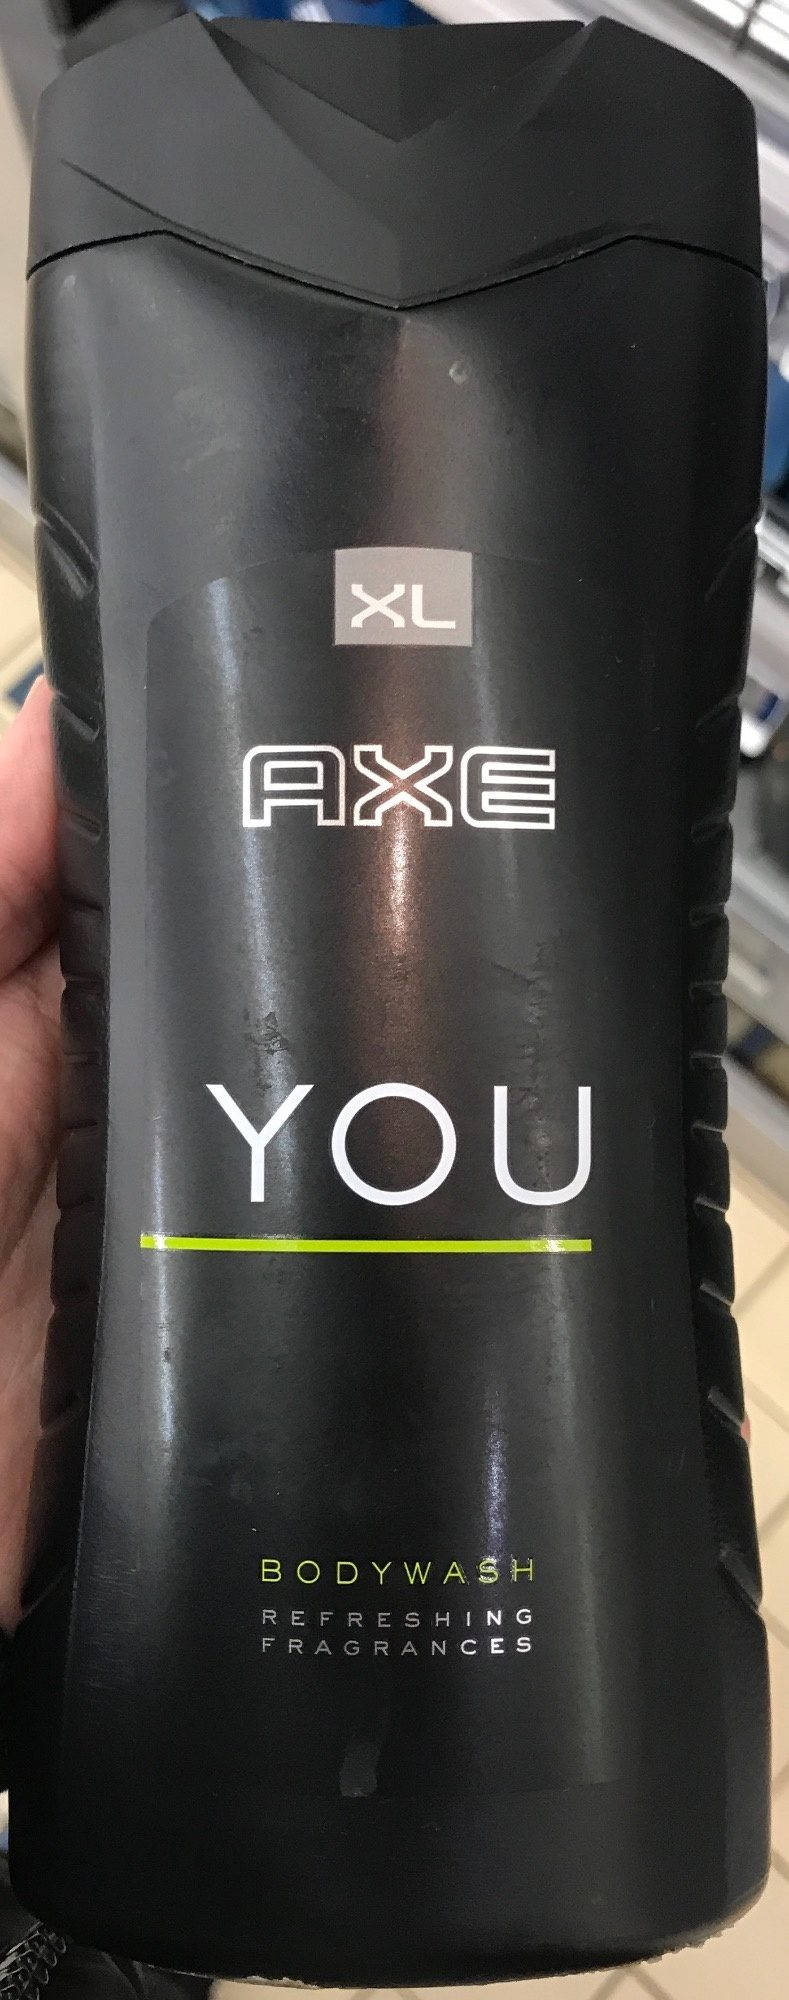 You Bodywash XL - Product - fr